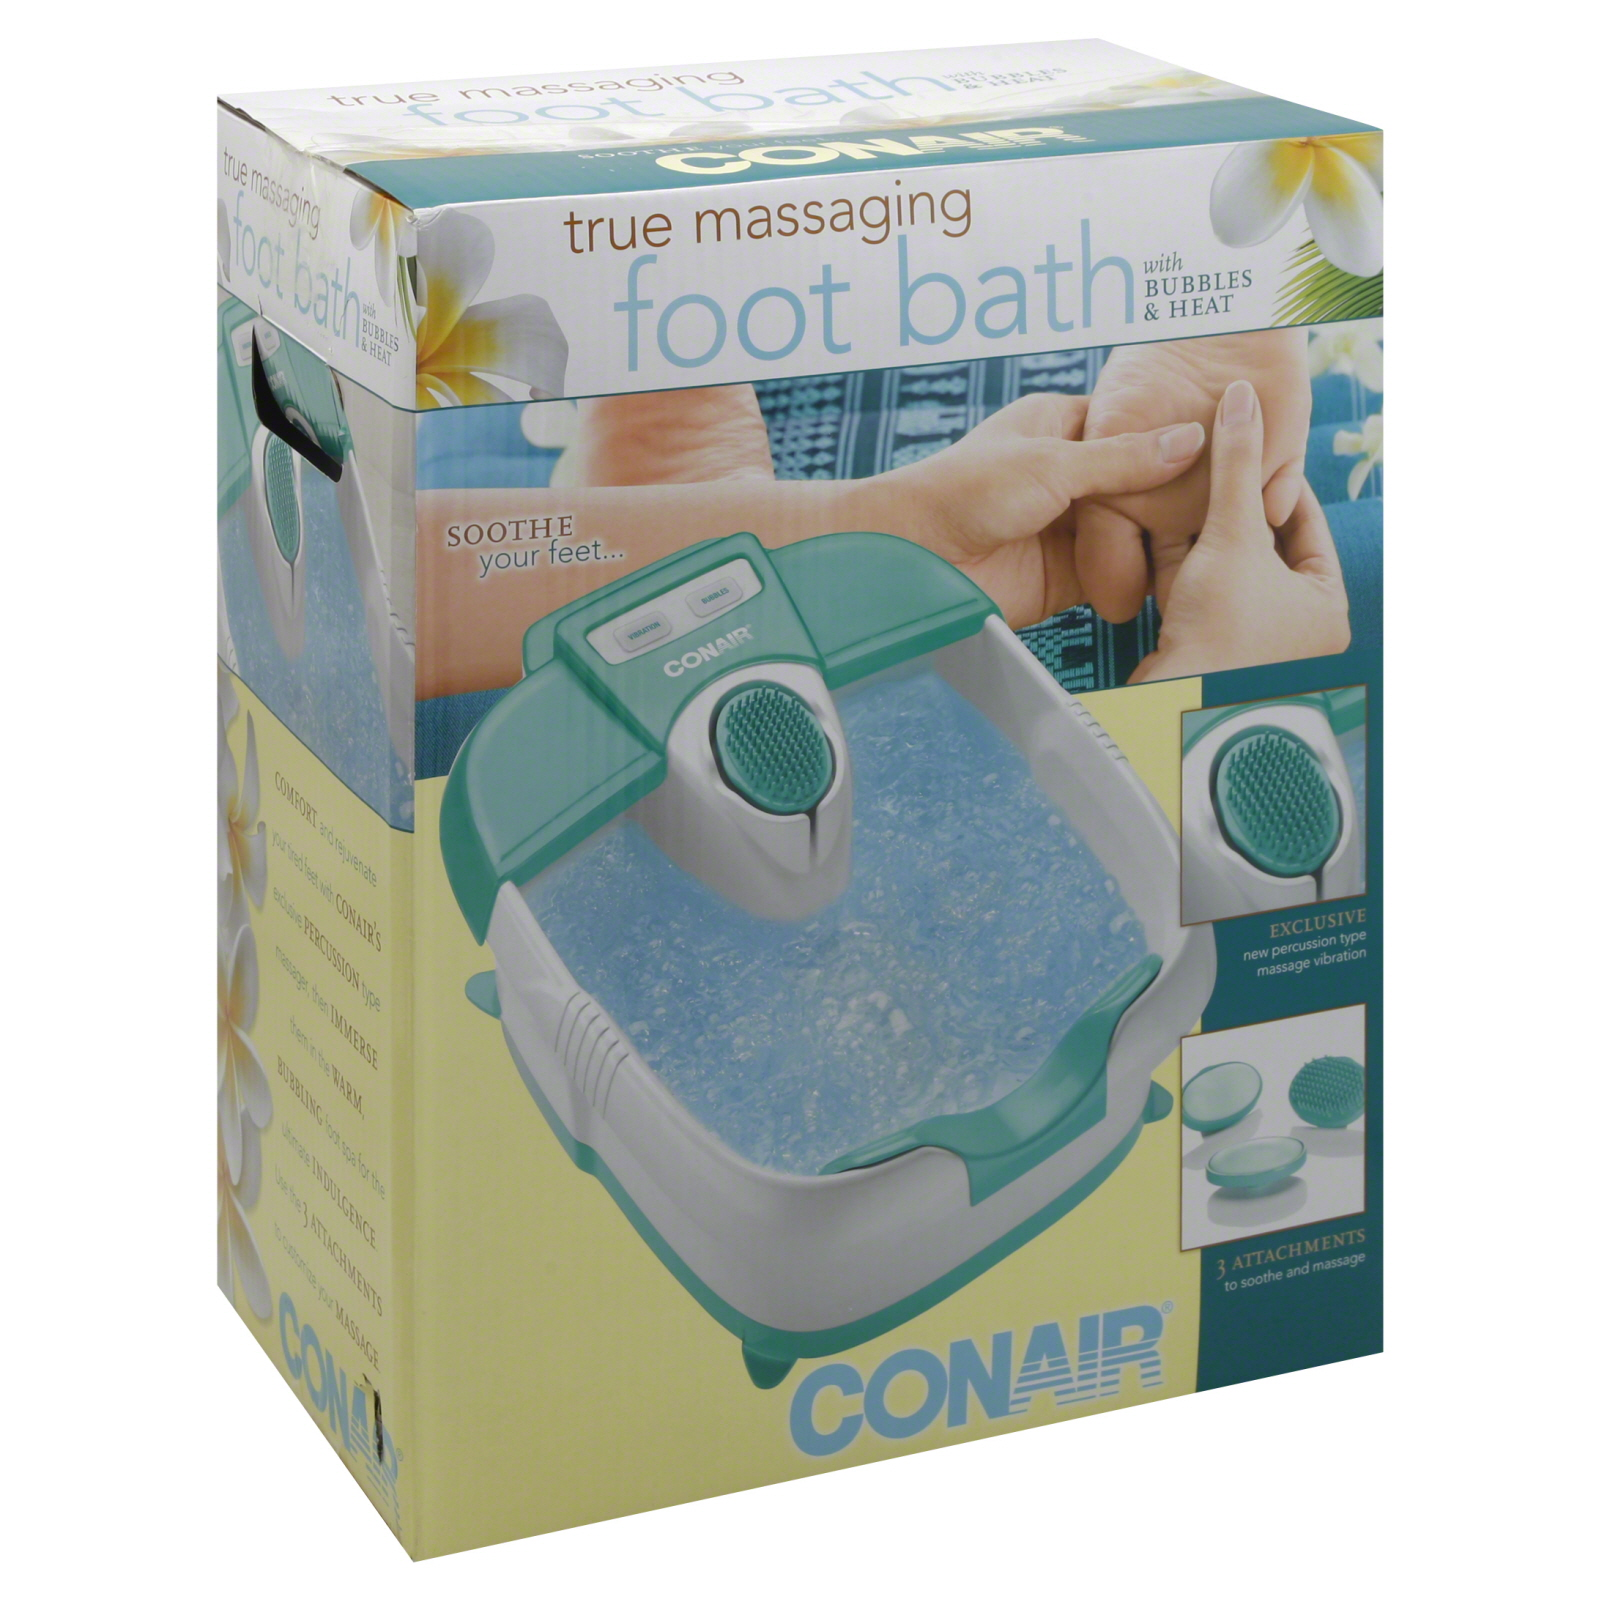 Conair Foot Spa With Massage Bubbles & Heat